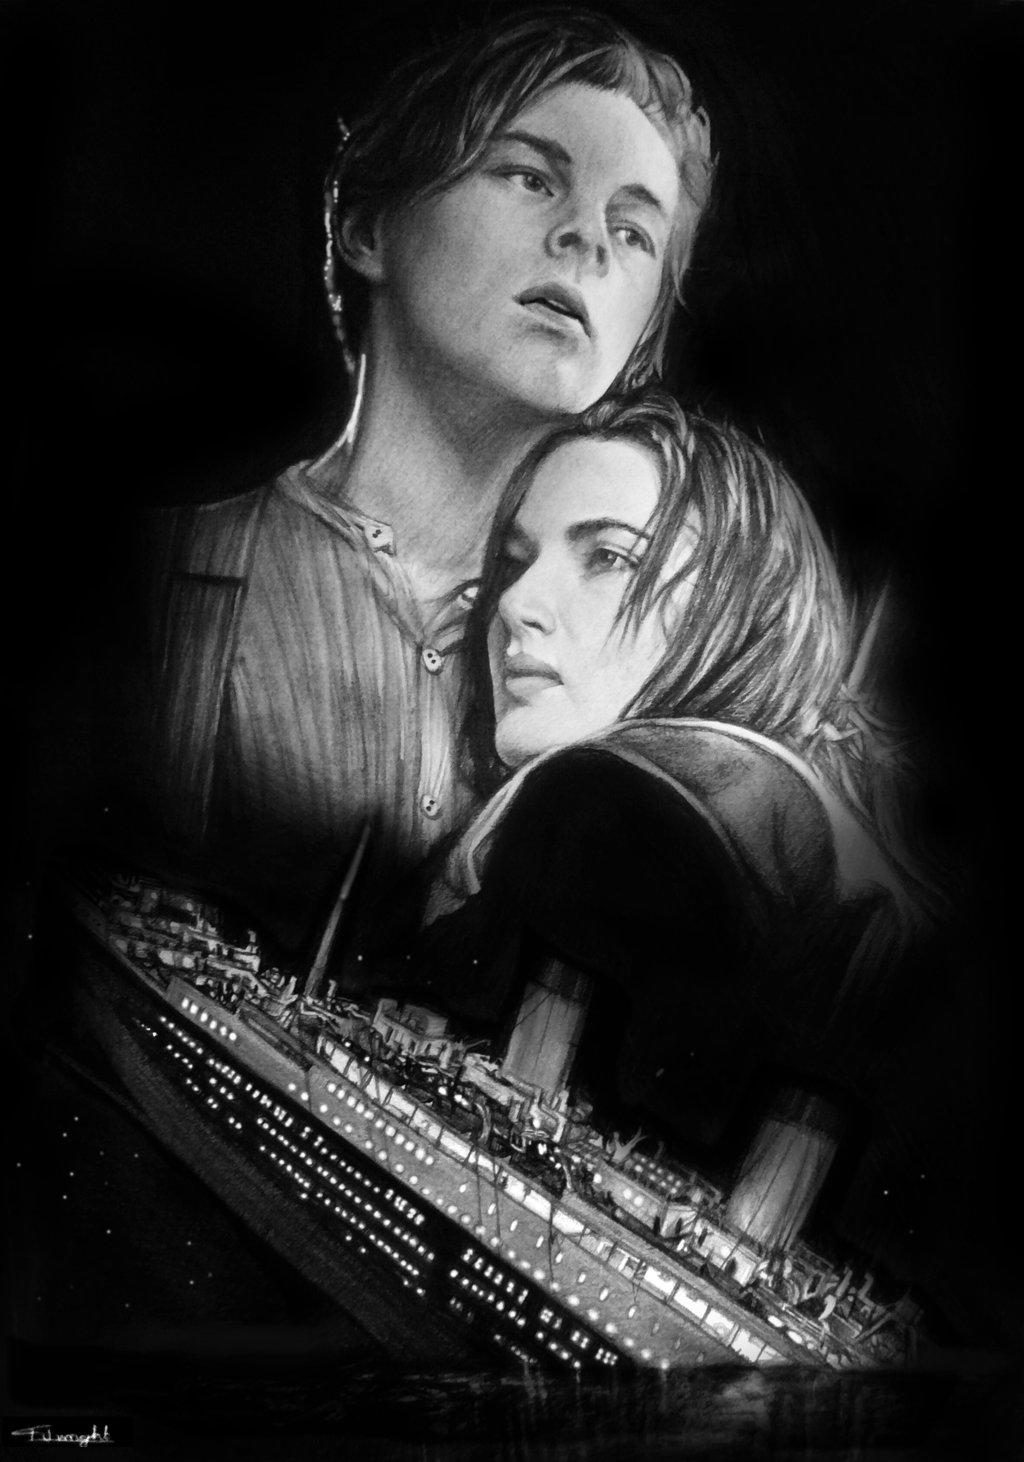 Drawn titanic awesome TITANIC tomwright666 tomwright666 by TITANIC